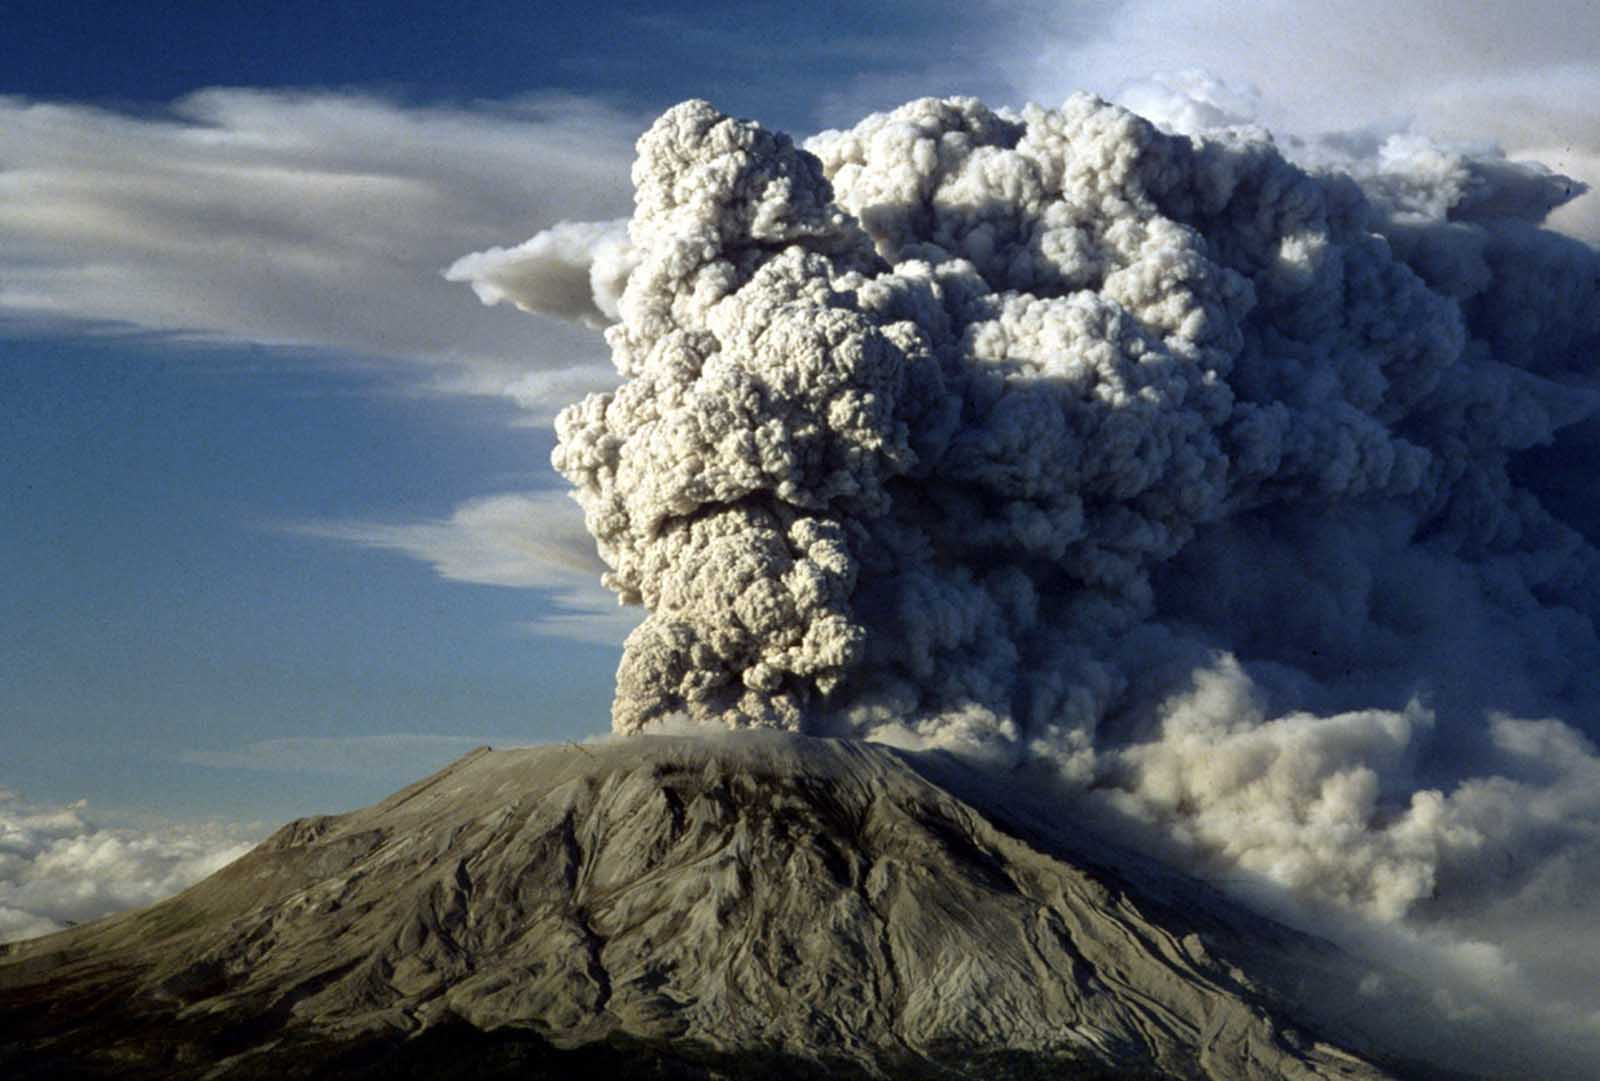 Mount St. Helens erupts again, on July 22, 1980.